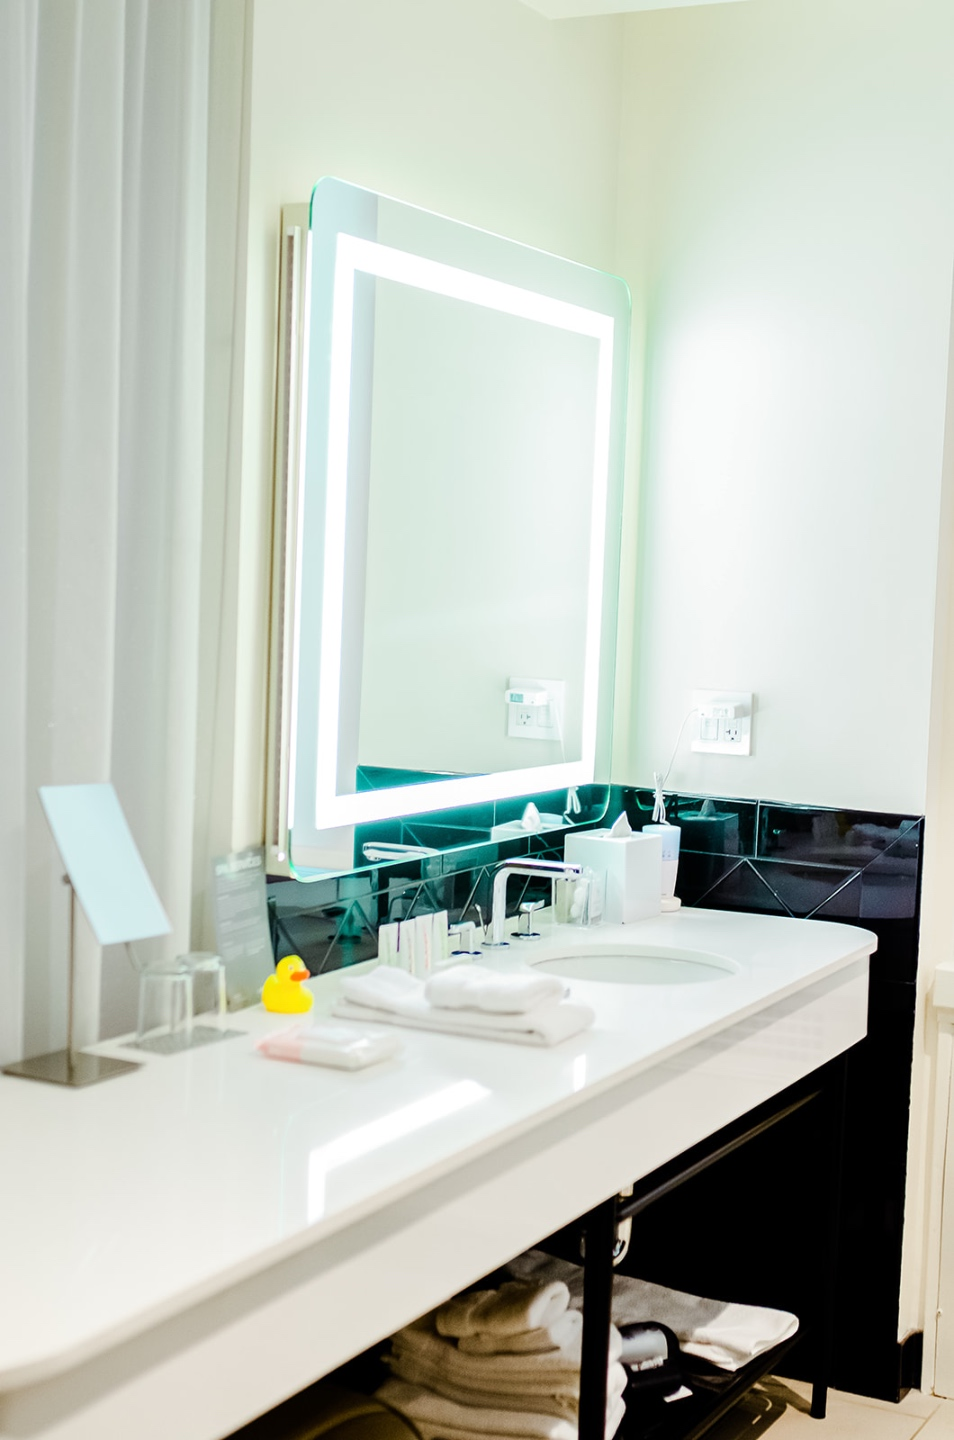 23 Awesome Things To Do in Durham - I'm Fixin' To - @imfixintoblog | Things to do in Durham by popular NC travel blog, I'm Fixin' To: image of a 21c Museum hotel bathroom with a lighted mirror, white vanity, and black tile walls.